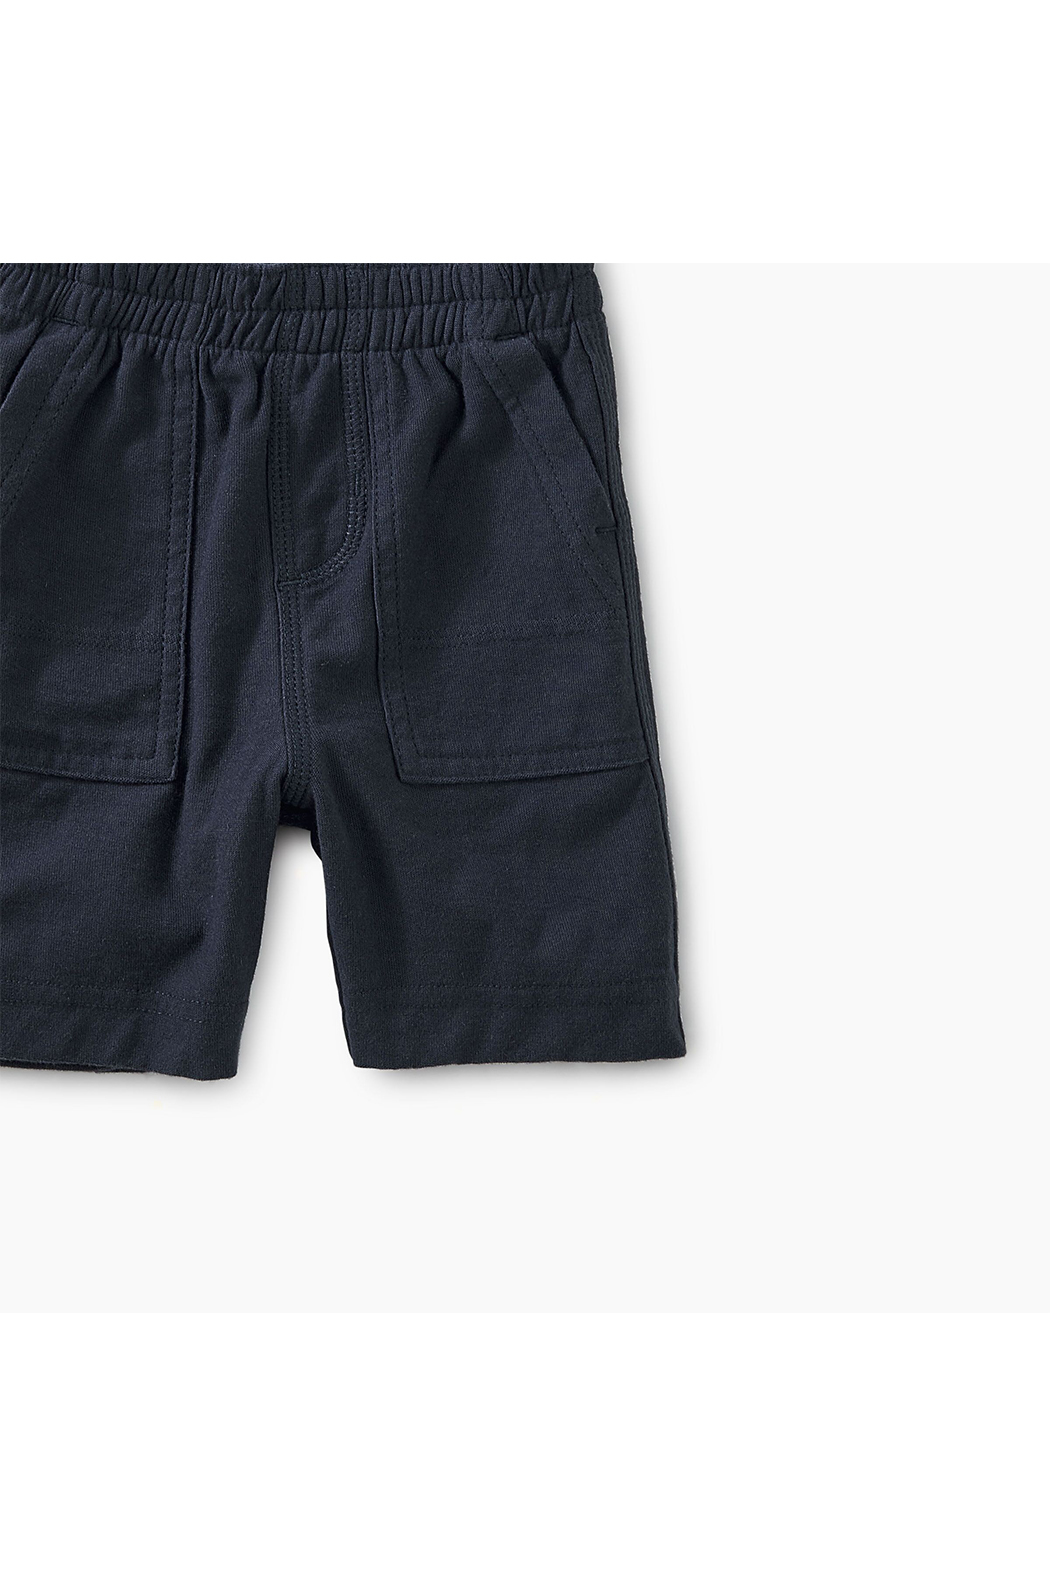 Tea Collection Playwear Baby Shorts - Front Full Image